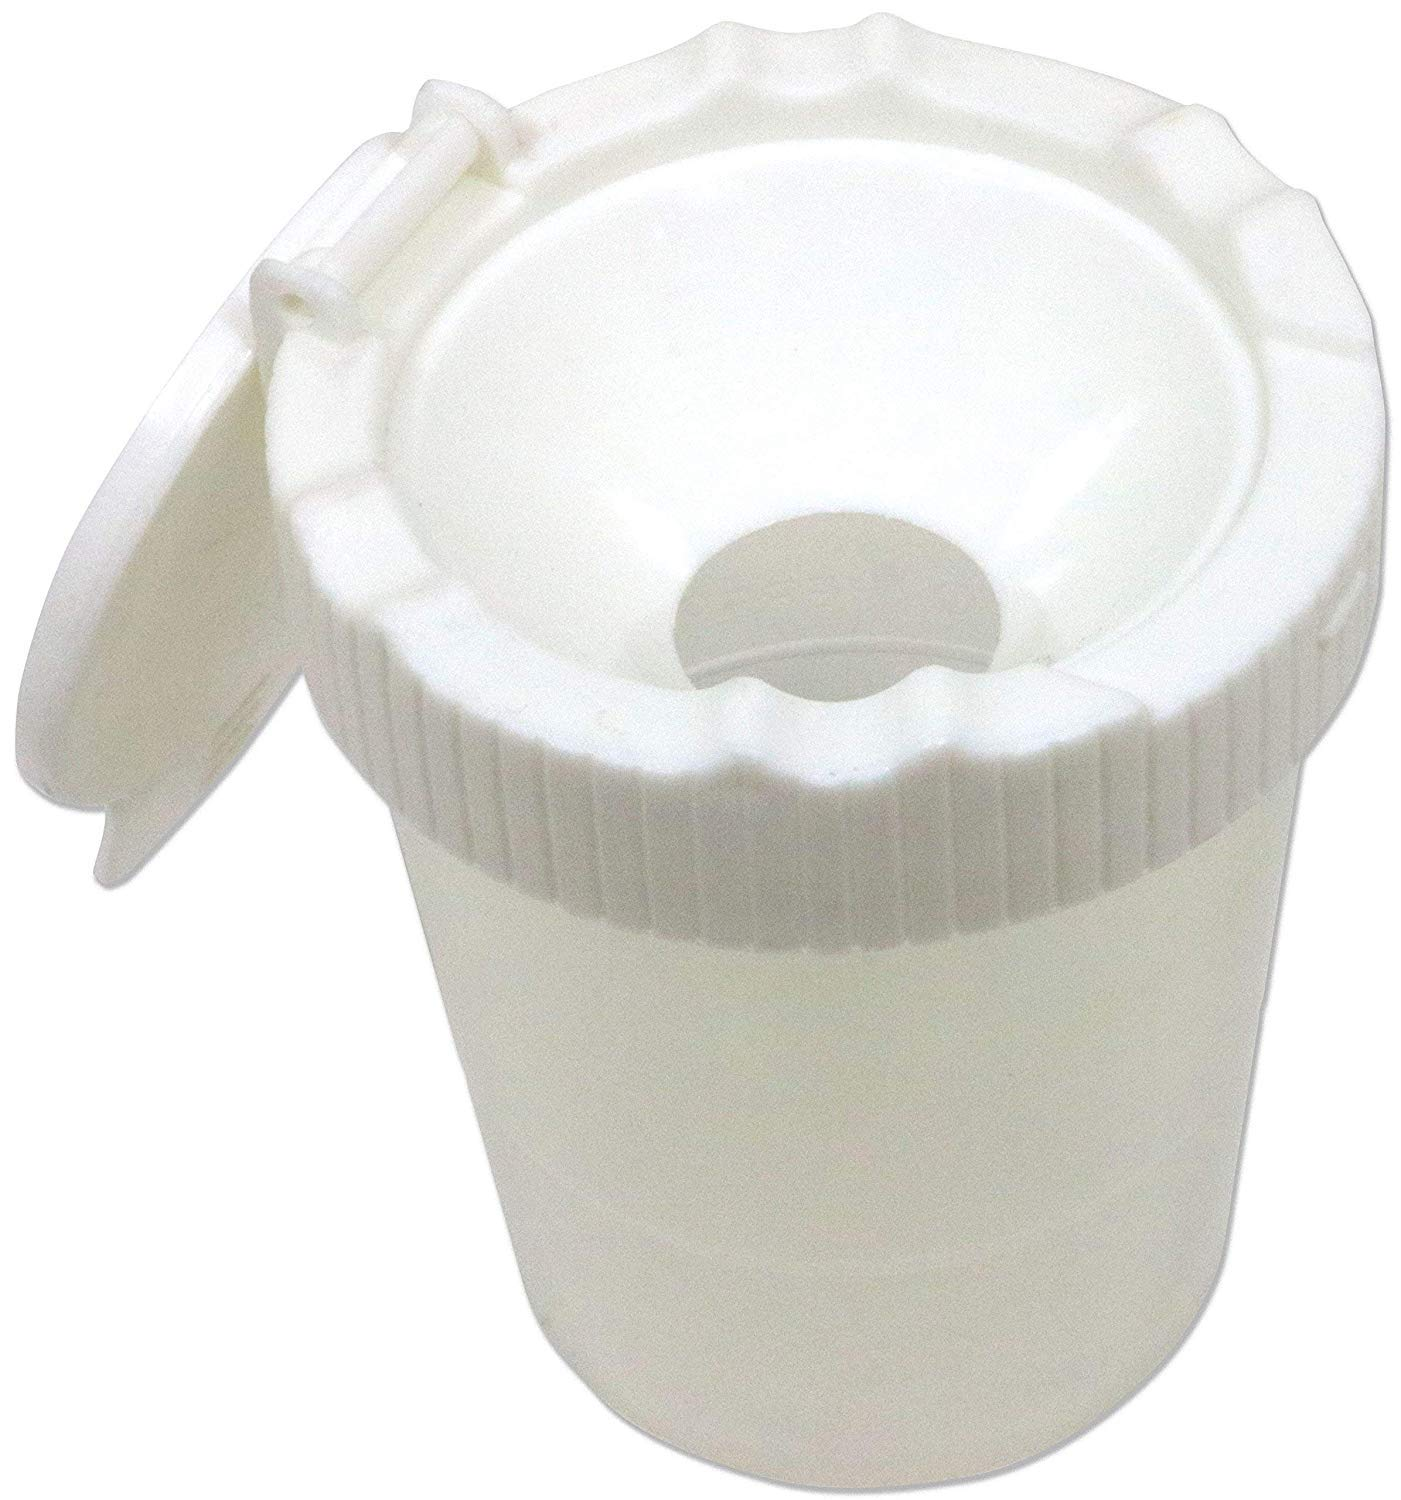 Sargent Art 22-1697 Non-Spill Paint Cups, White, 12 Count (Тhrее Расk) by Sargent Art (SARAD)